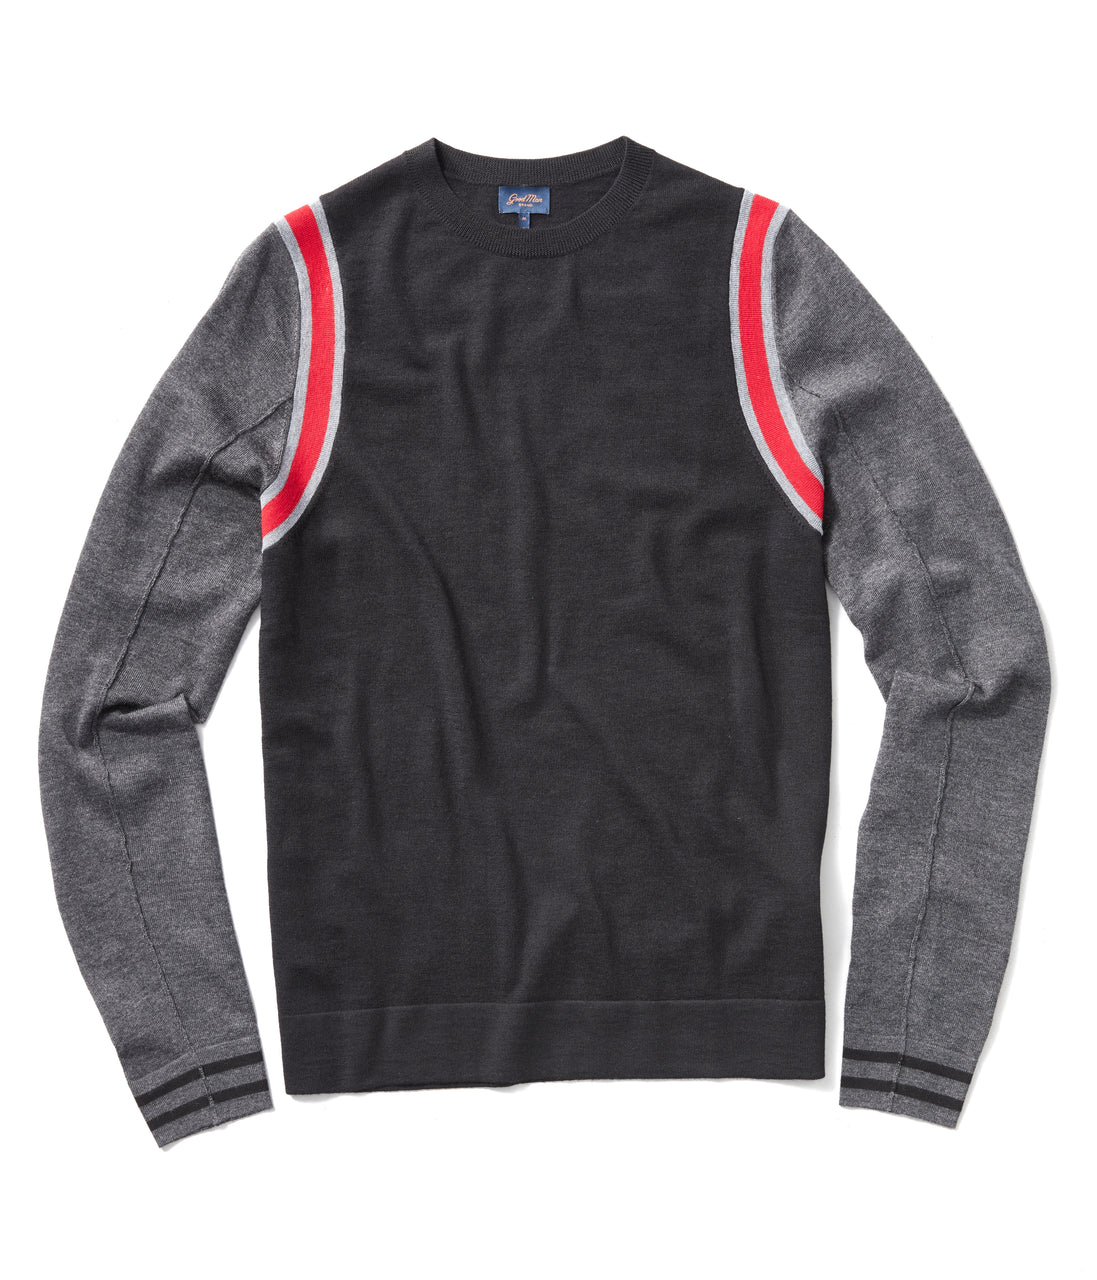 MVP Athletic Color Block Sweater - Red - Good Man Brand - MVP Athletic Color Block Sweater - Red